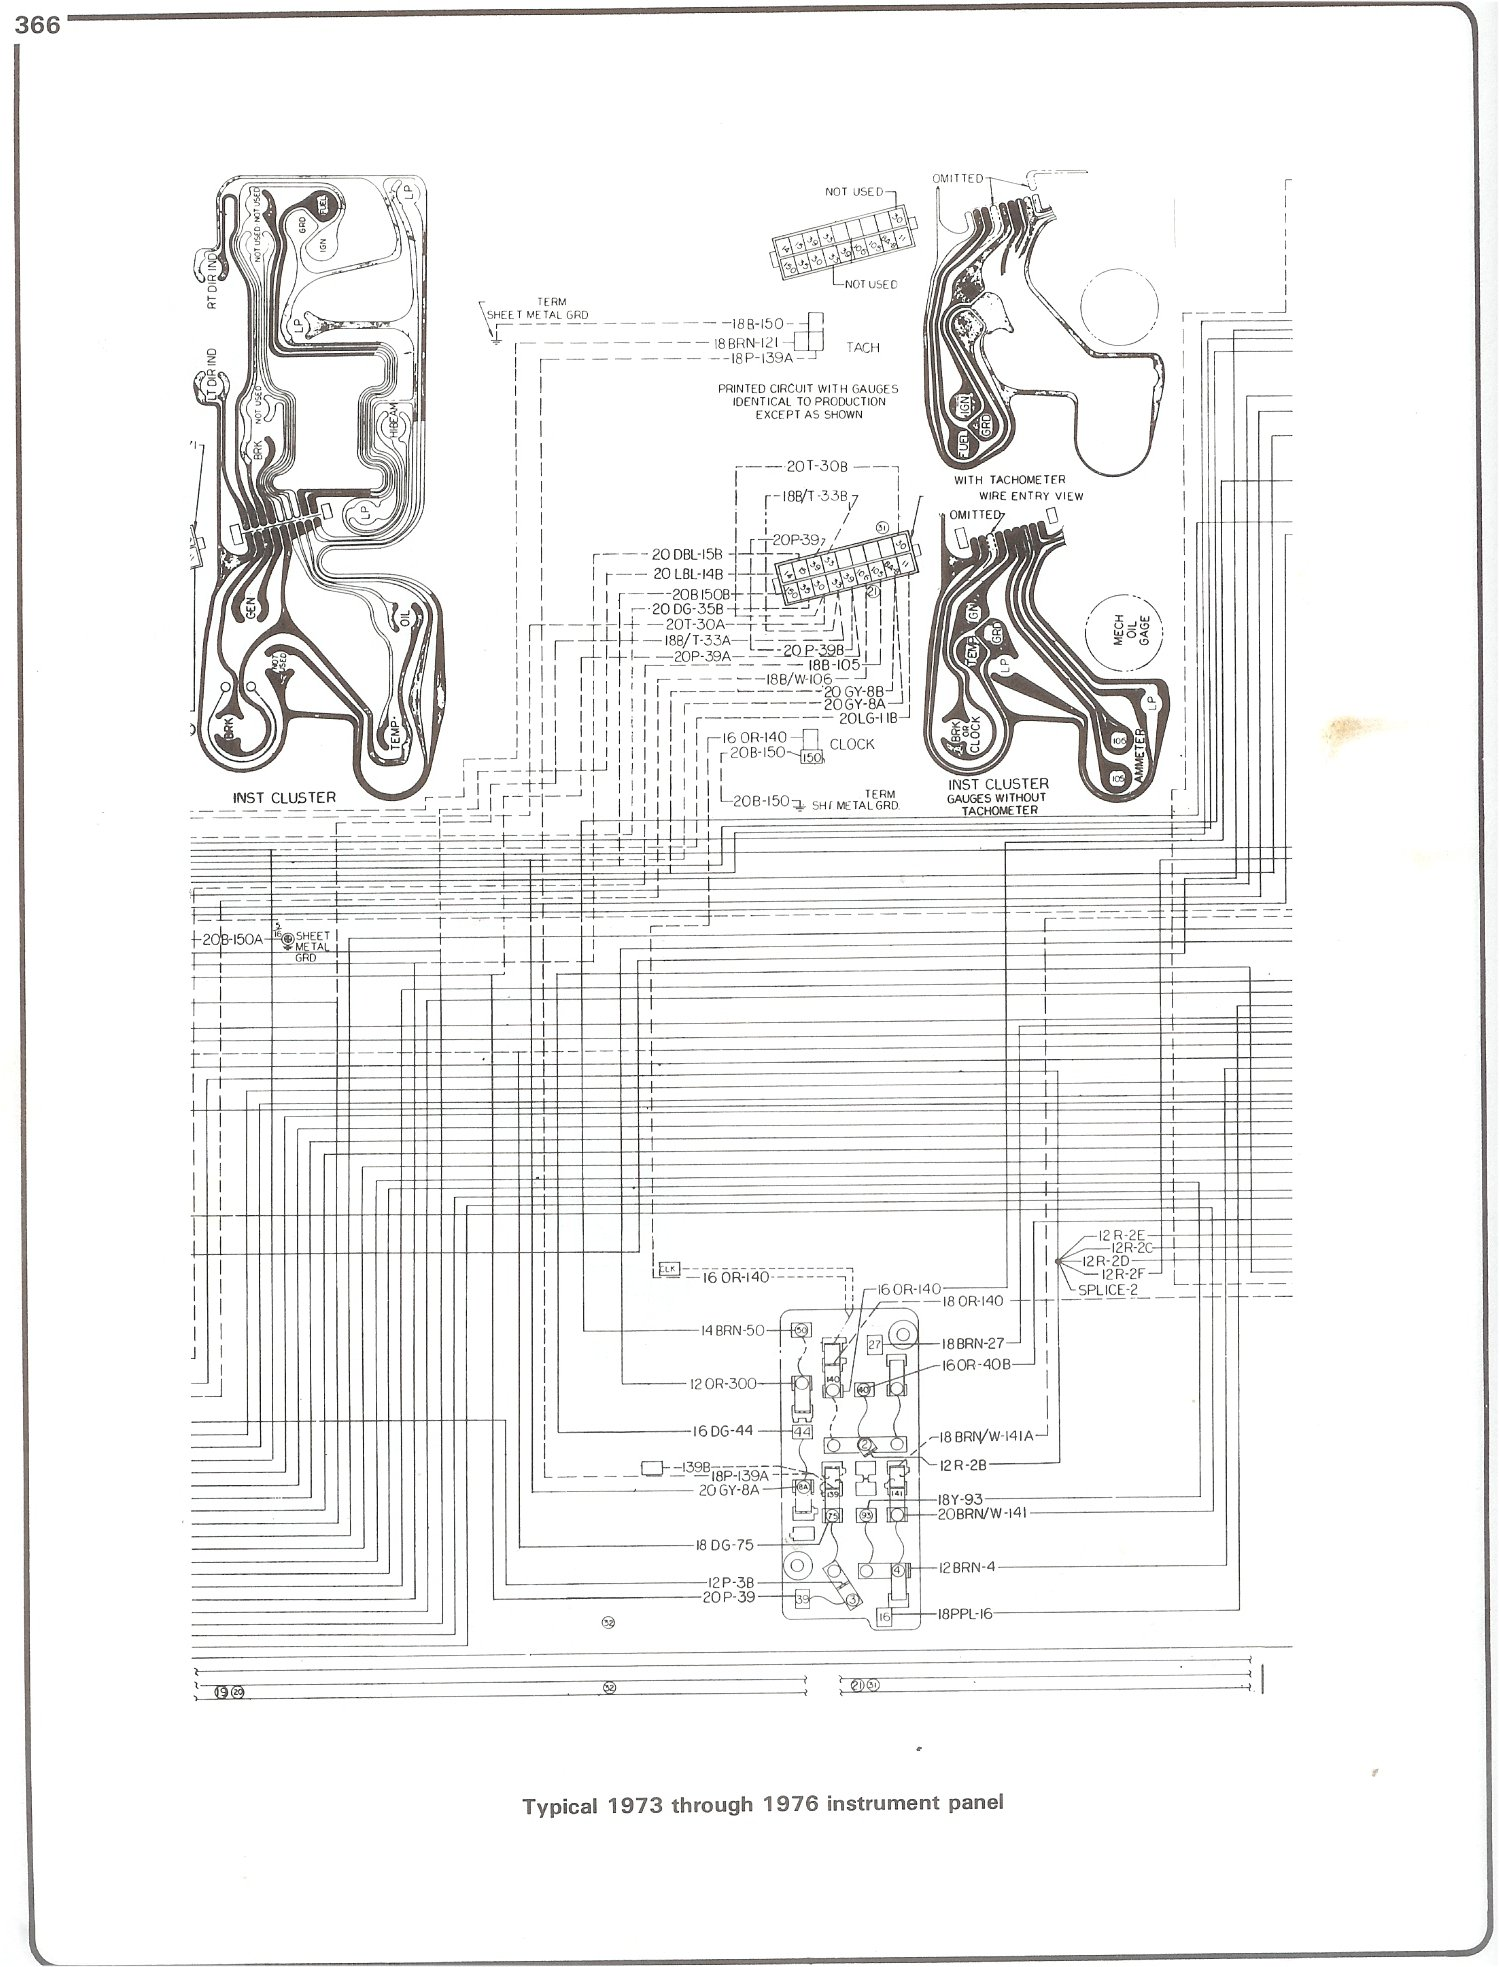 73 76_instrument complete 73 87 wiring diagrams Chevy Silverado Wiring Diagram at honlapkeszites.co